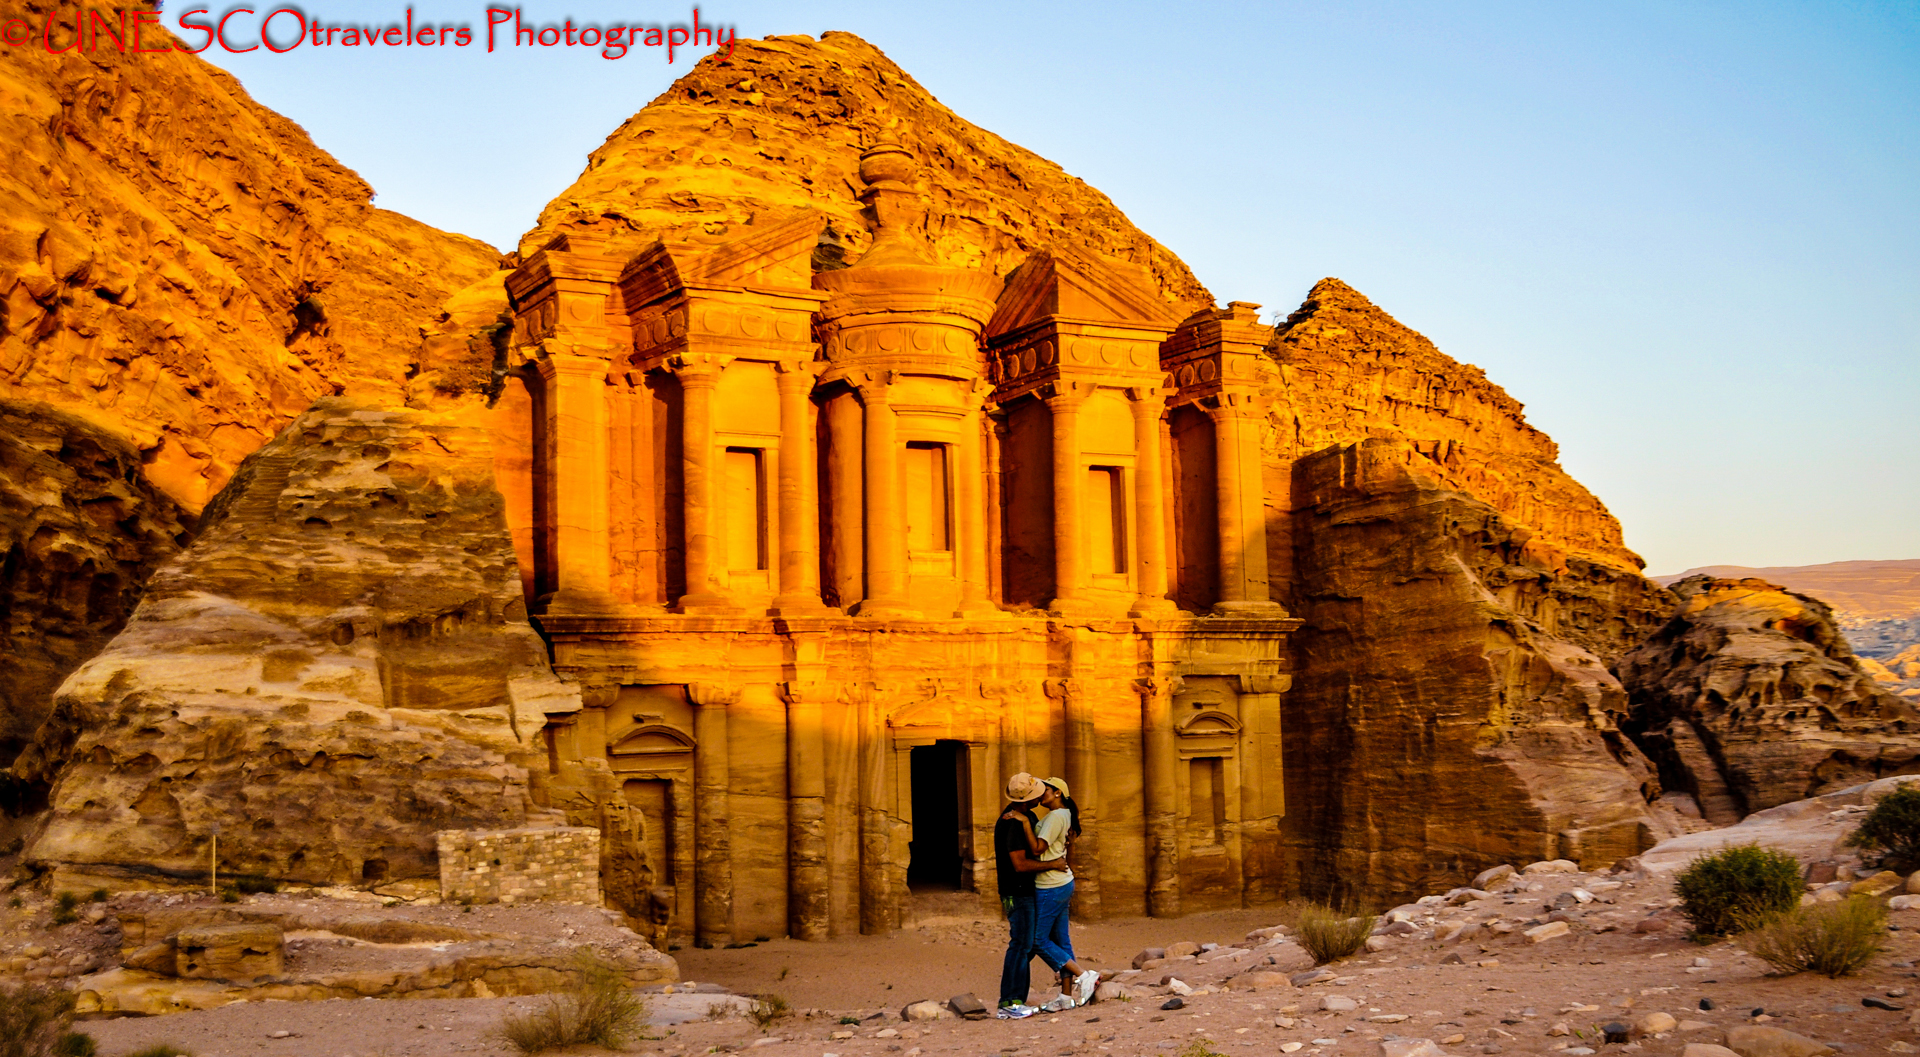 The Treasury and Monastery of Petra @ Jordan Petra - Jordan By UNESCOtravelers